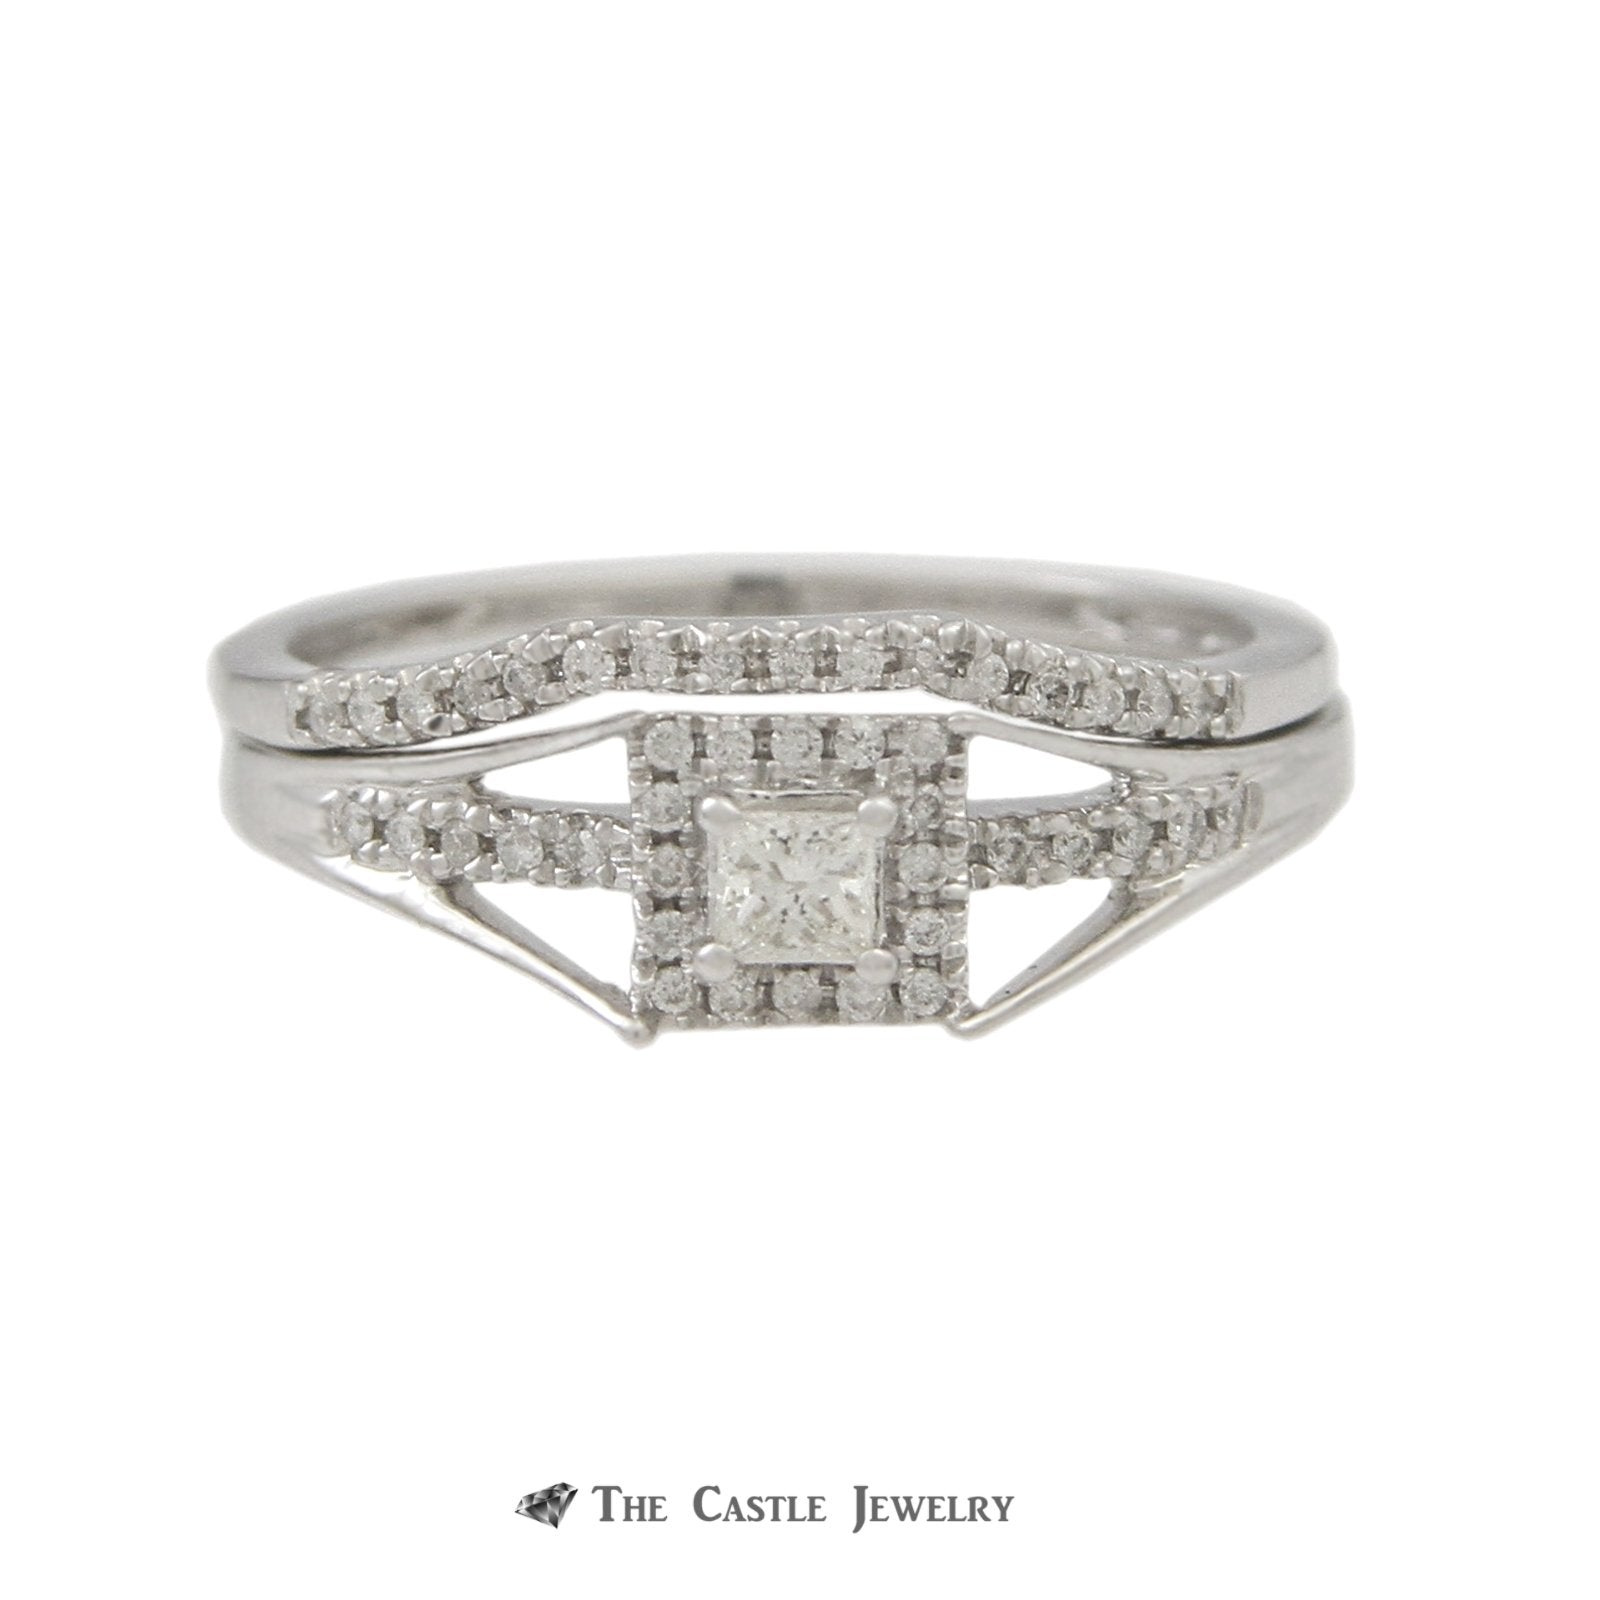 Crown Collection 1/4cttw Princess Cut Diamond Bridal Engagement Ring Set in 10K